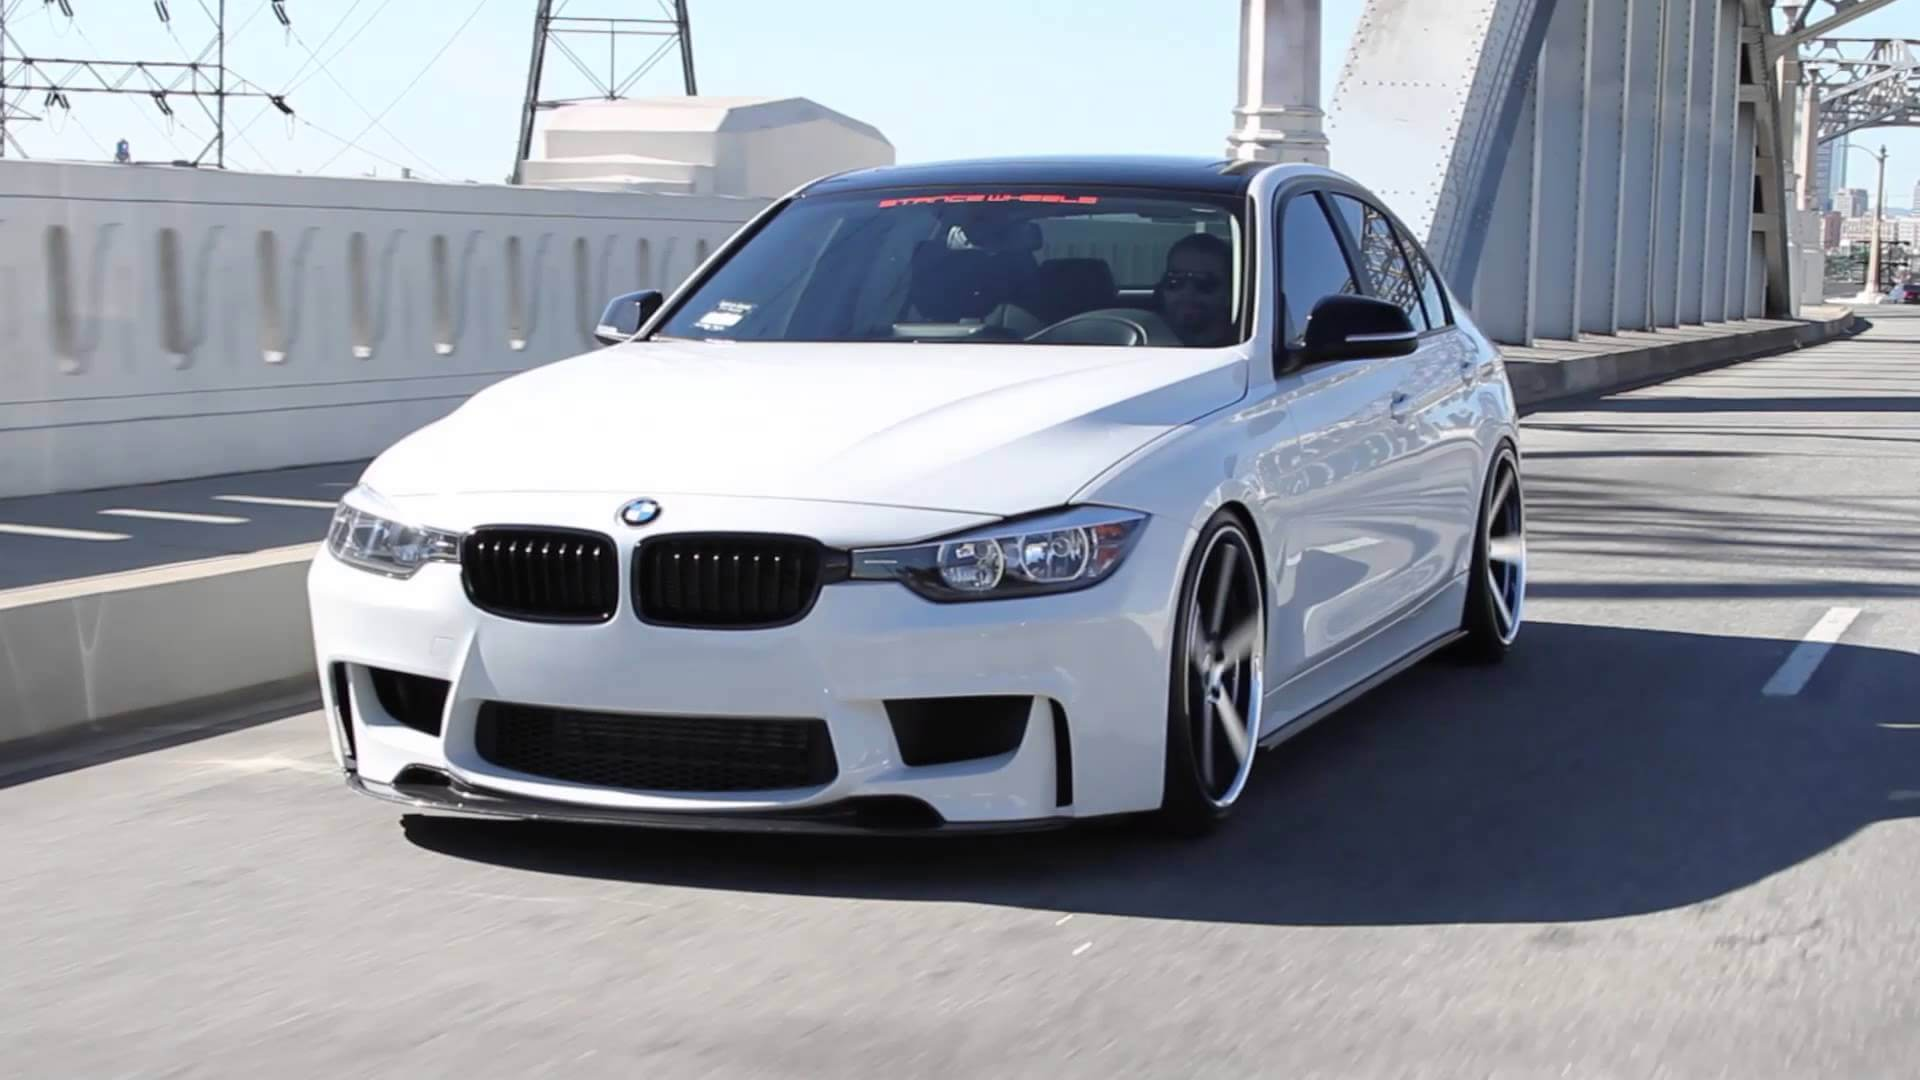 Stance Sc 6ix Wheels On Bmw M4